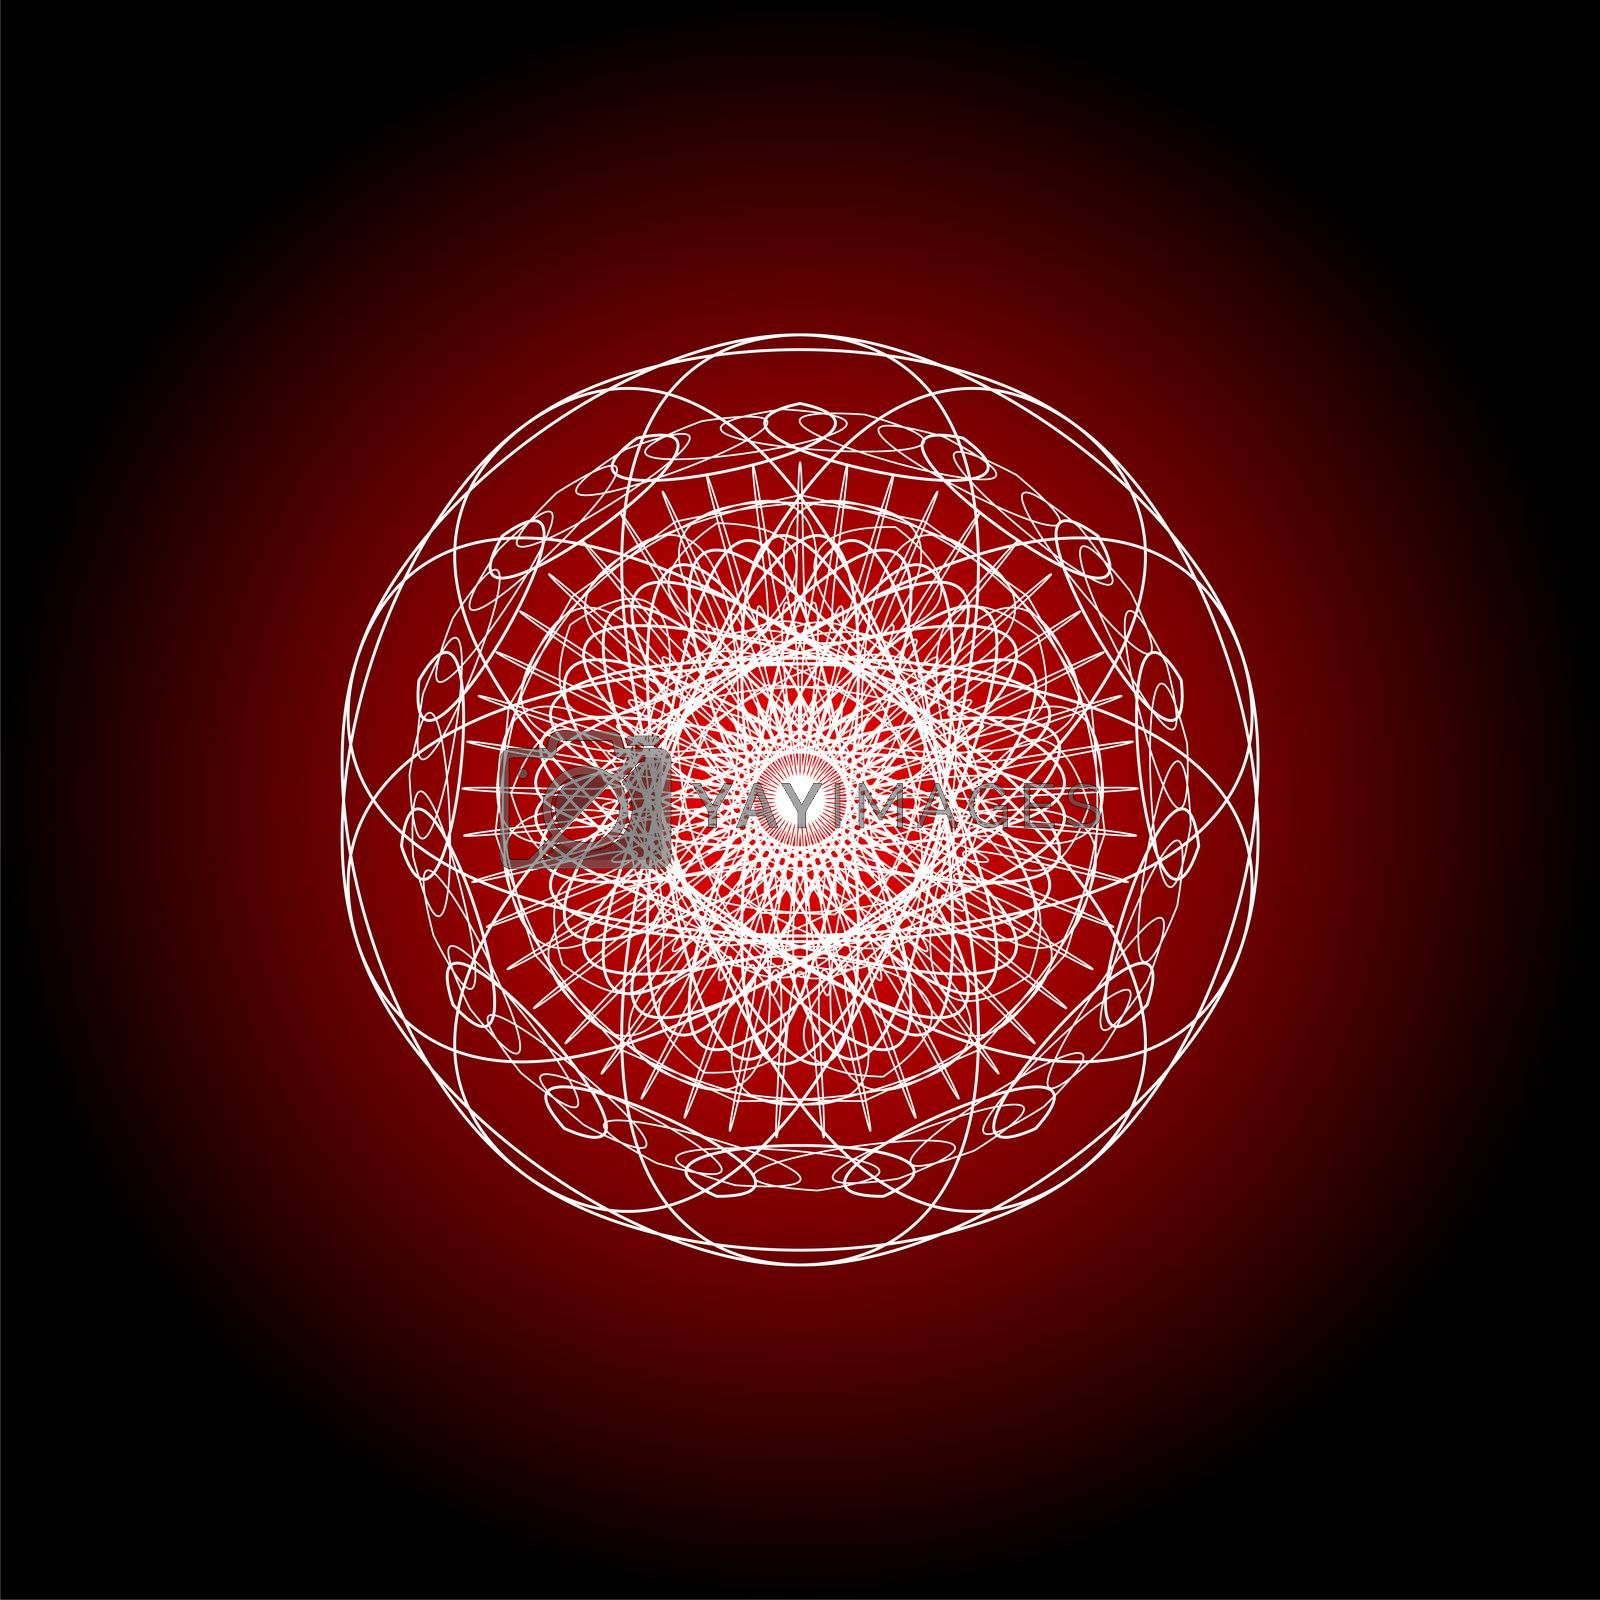 Mandala guiiloche spirographic elements for design templates watermarks of certificates, vouchers, banknotes cards and invitations